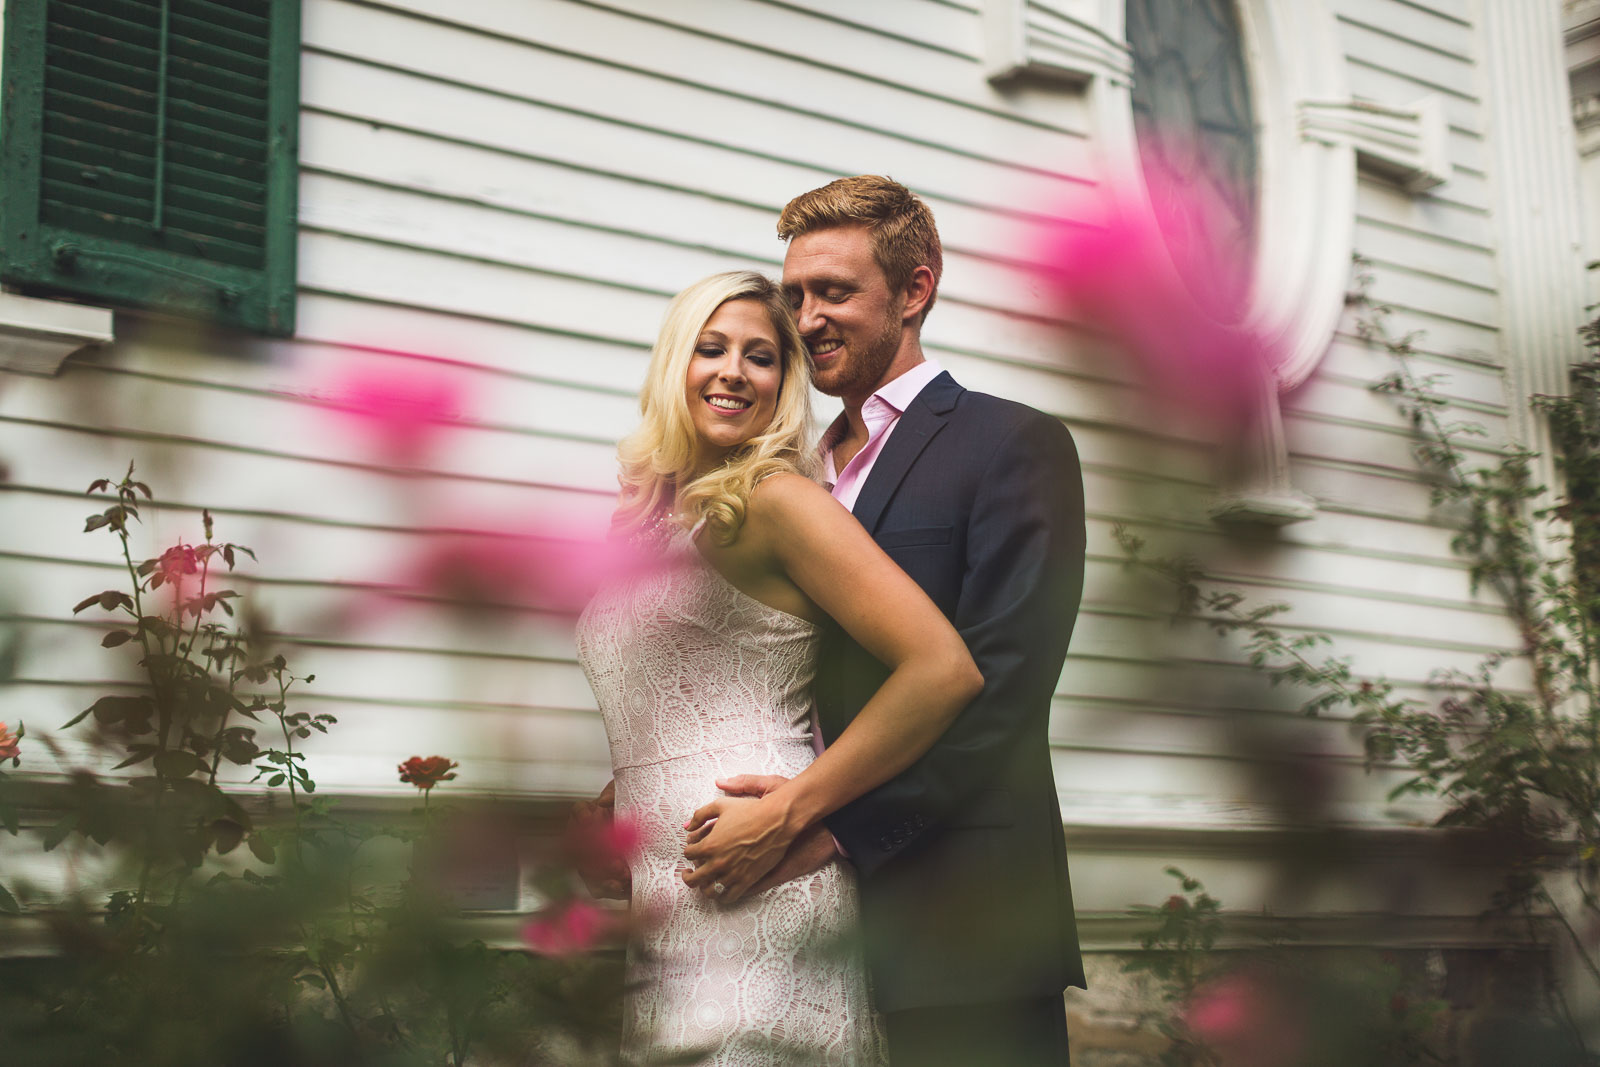 Rose Garden Engagement Photography